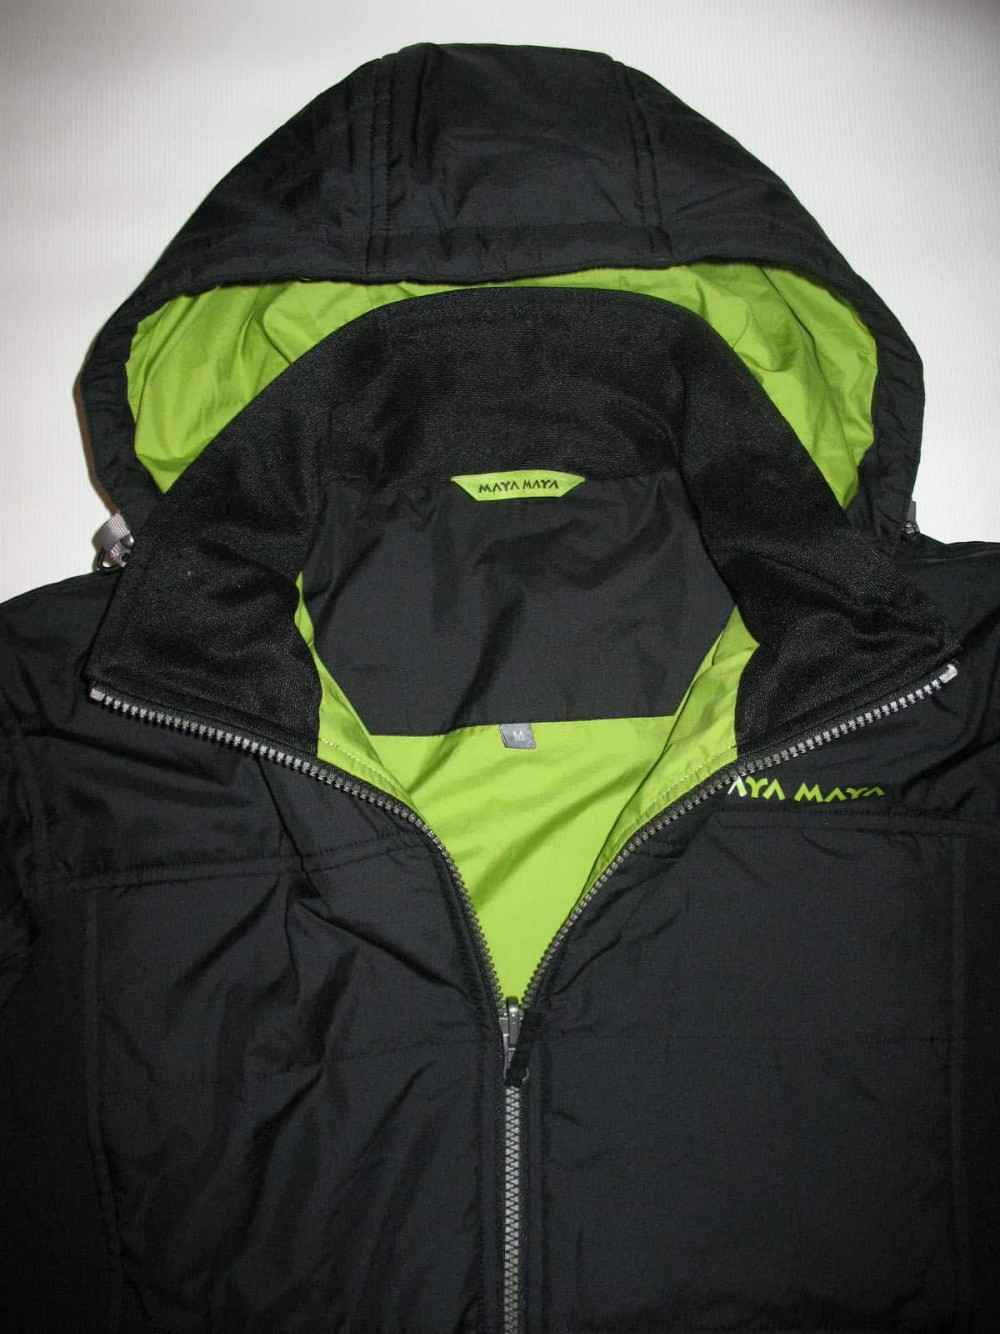 Куртка MAYA MAYA ultralight primaloft jacket (размер M) - 4